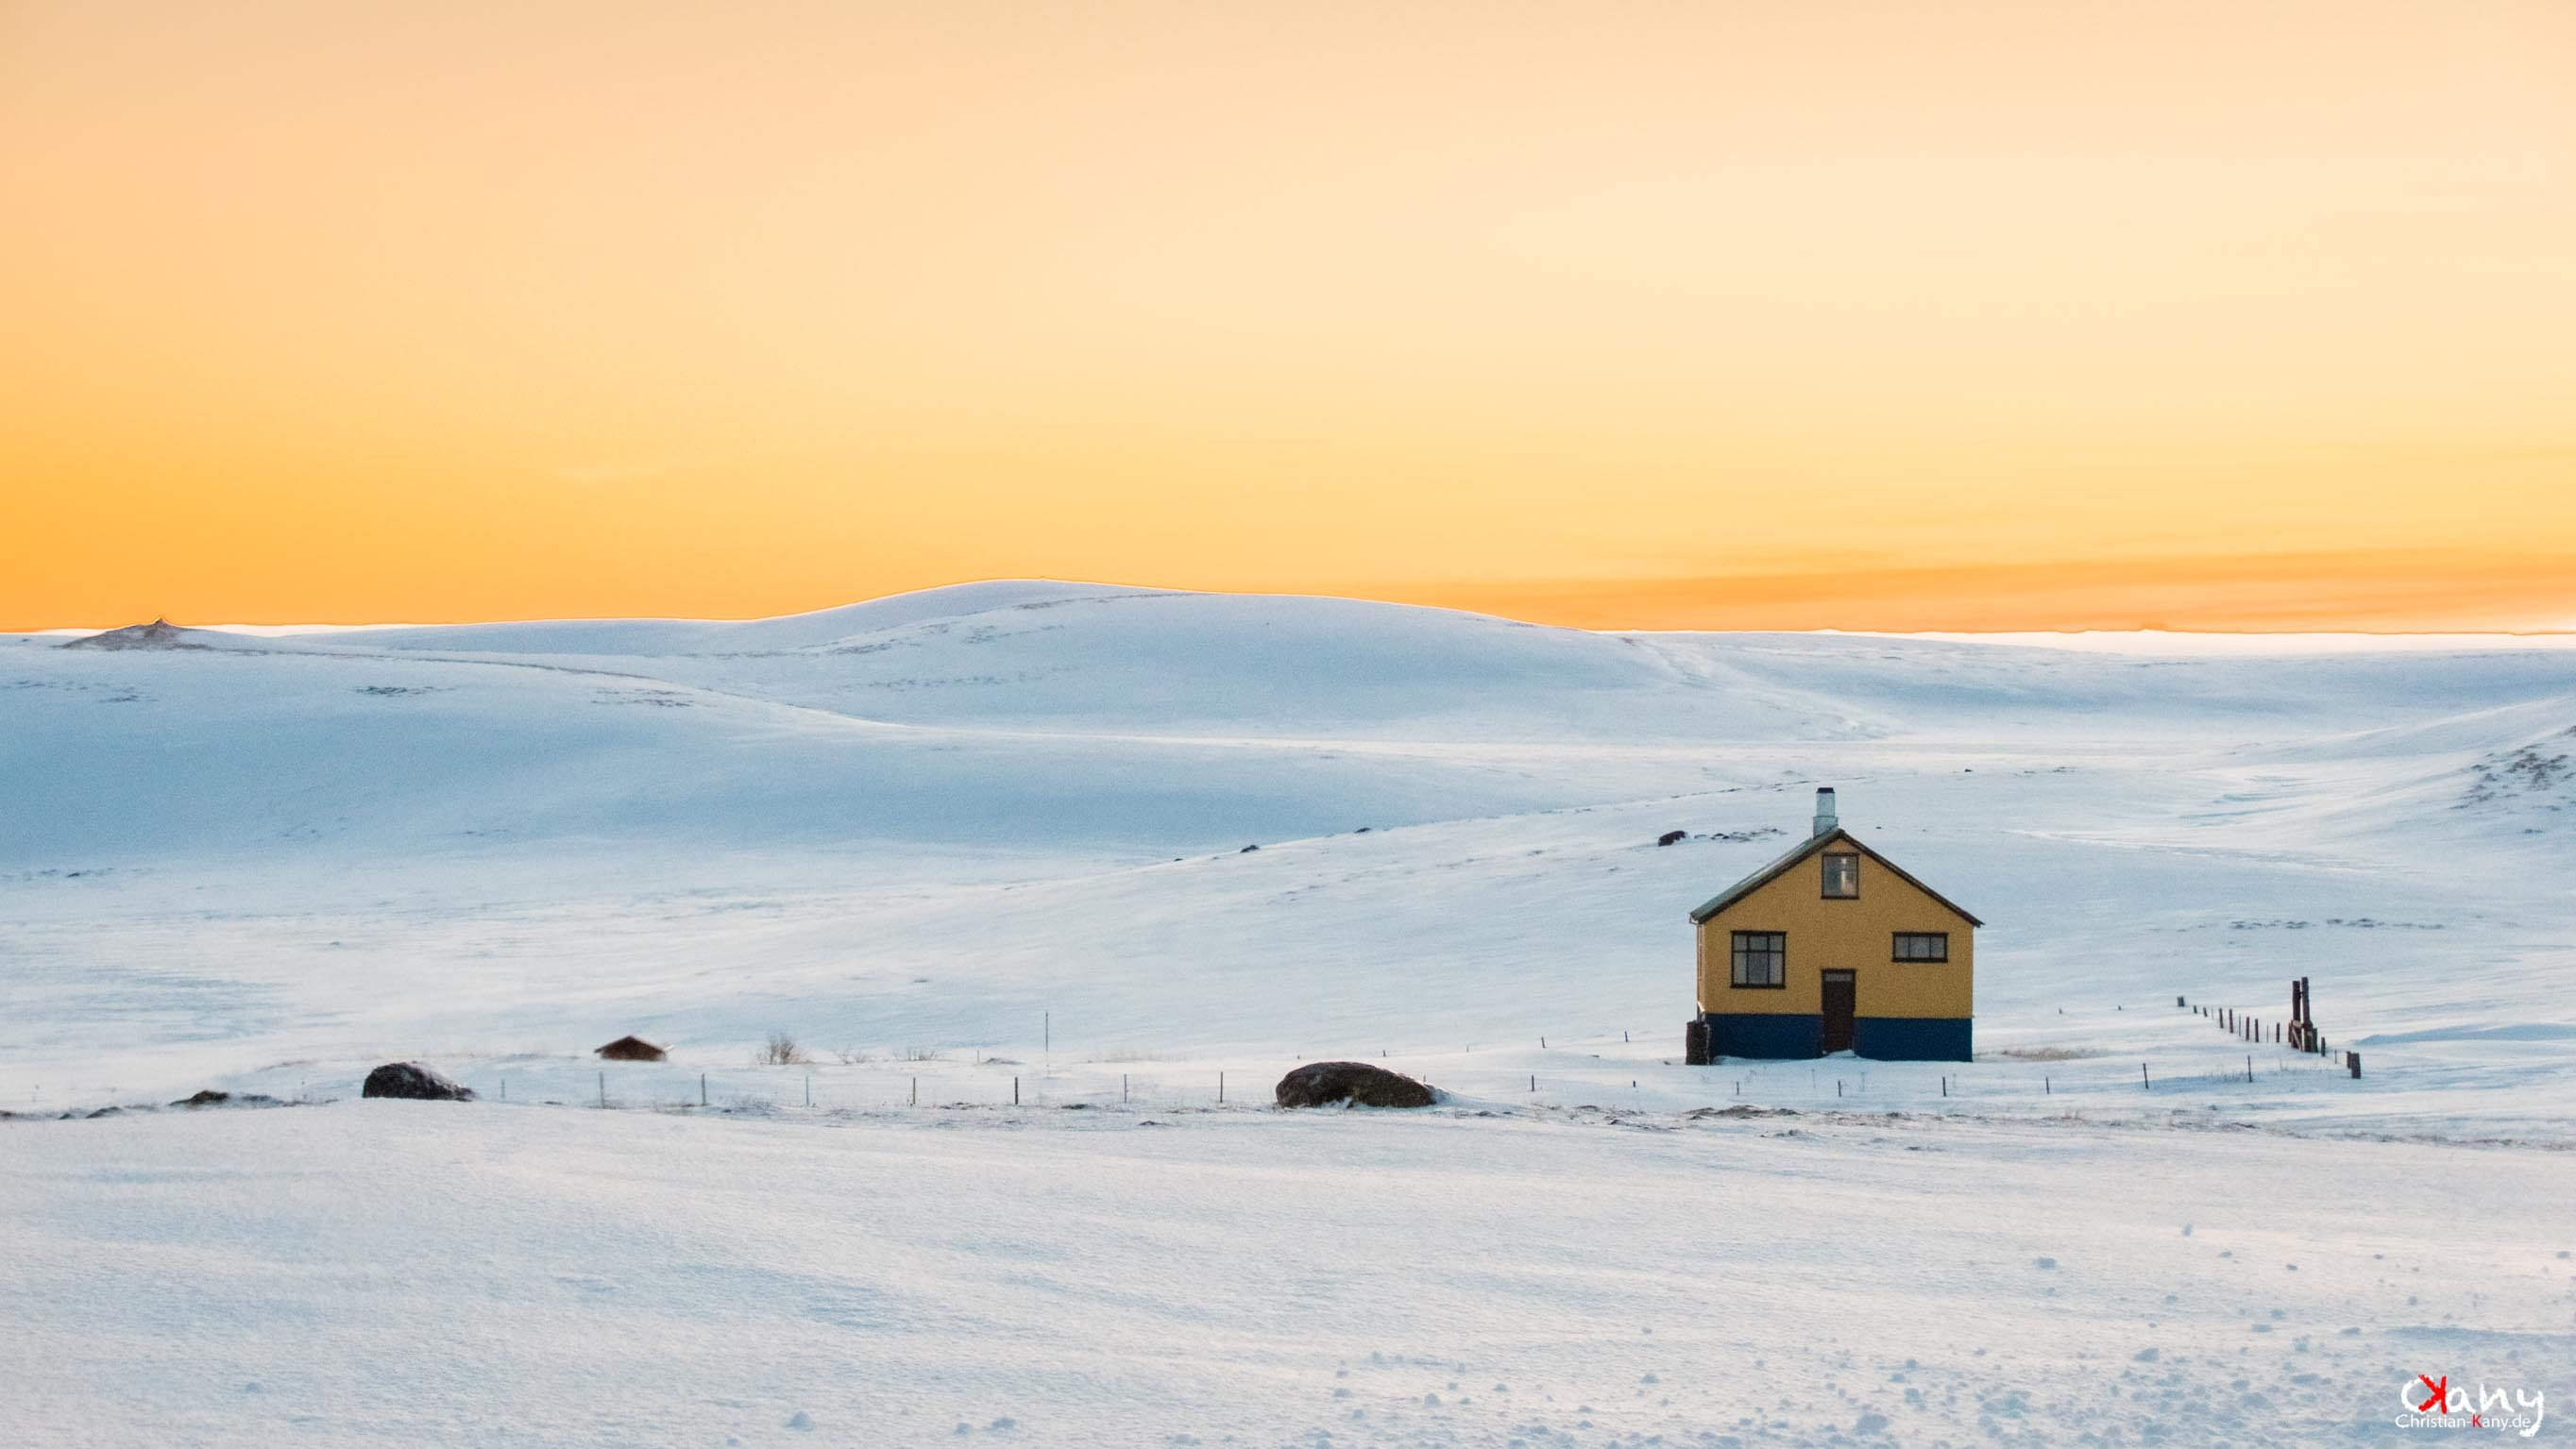 House in in sunrise Iceland